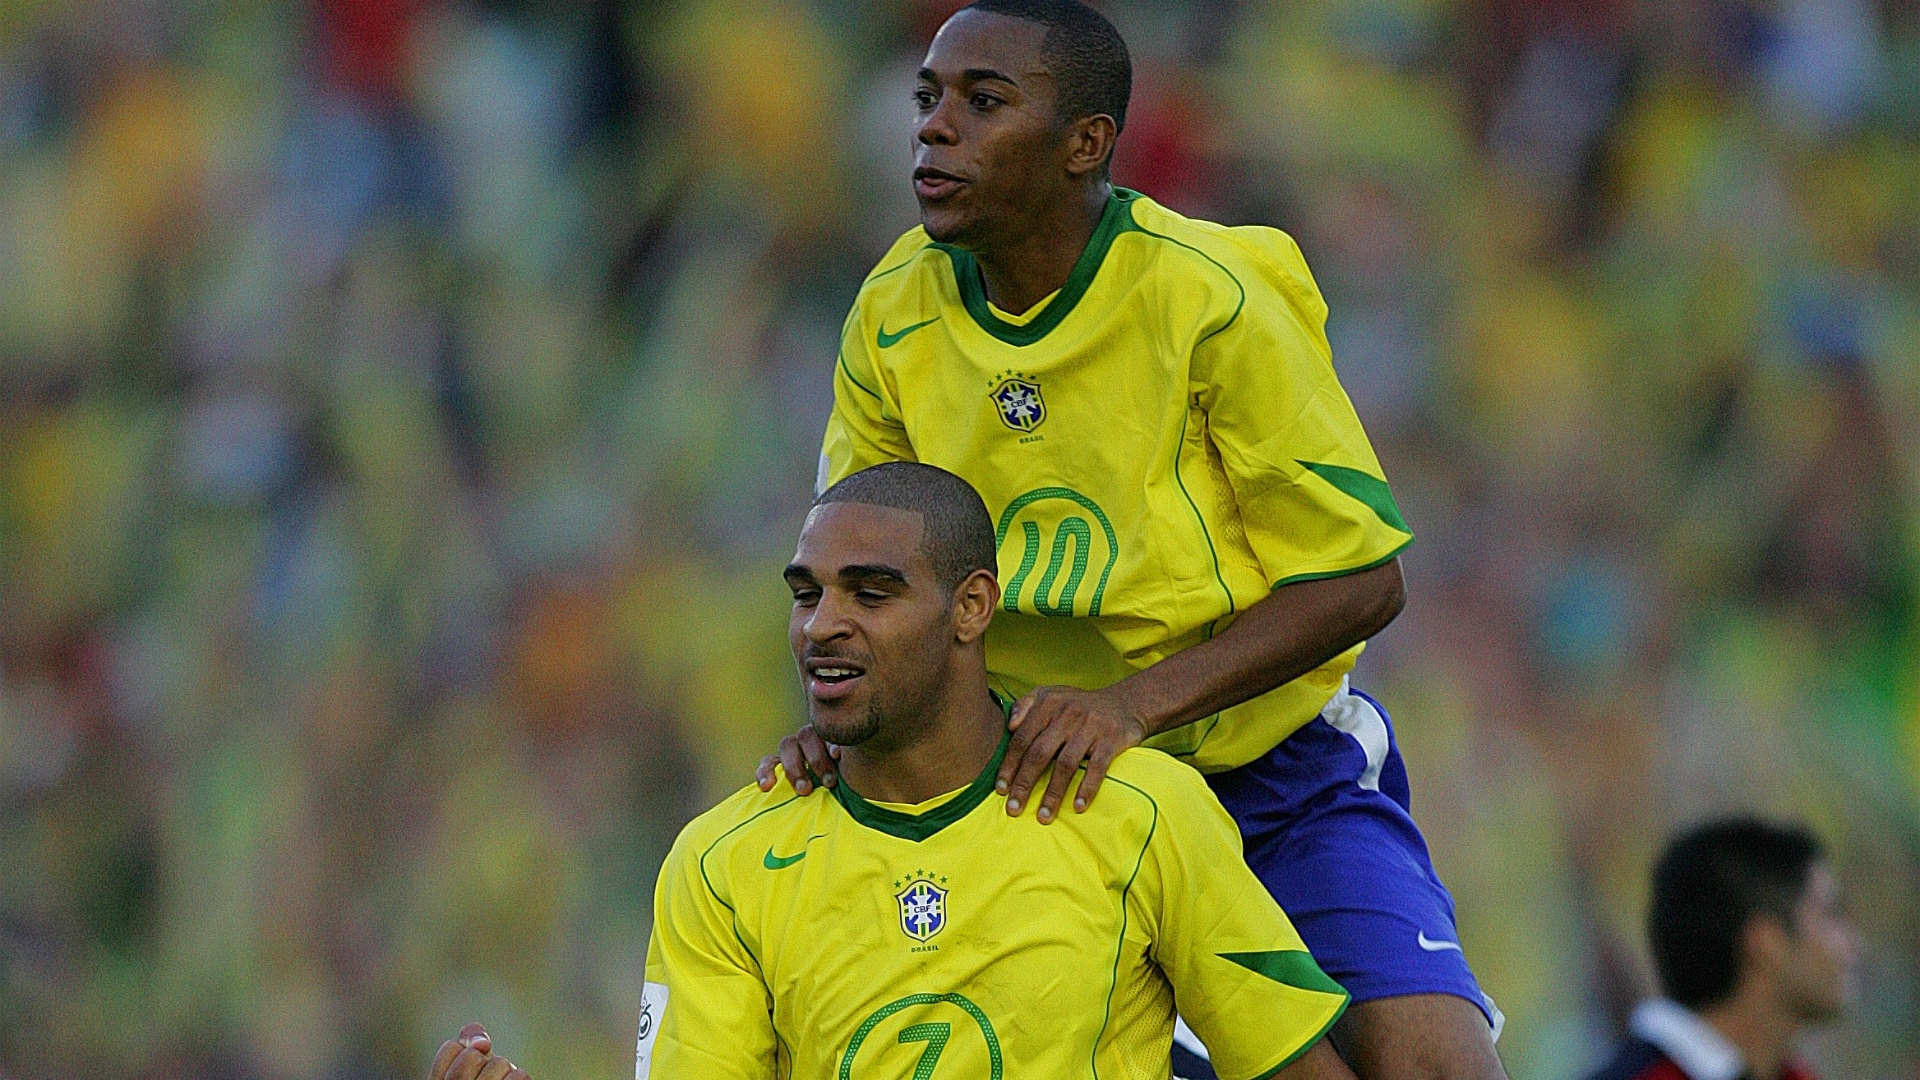 Adriano e Robinho comemoram gol pela seleo brasileira em 2005